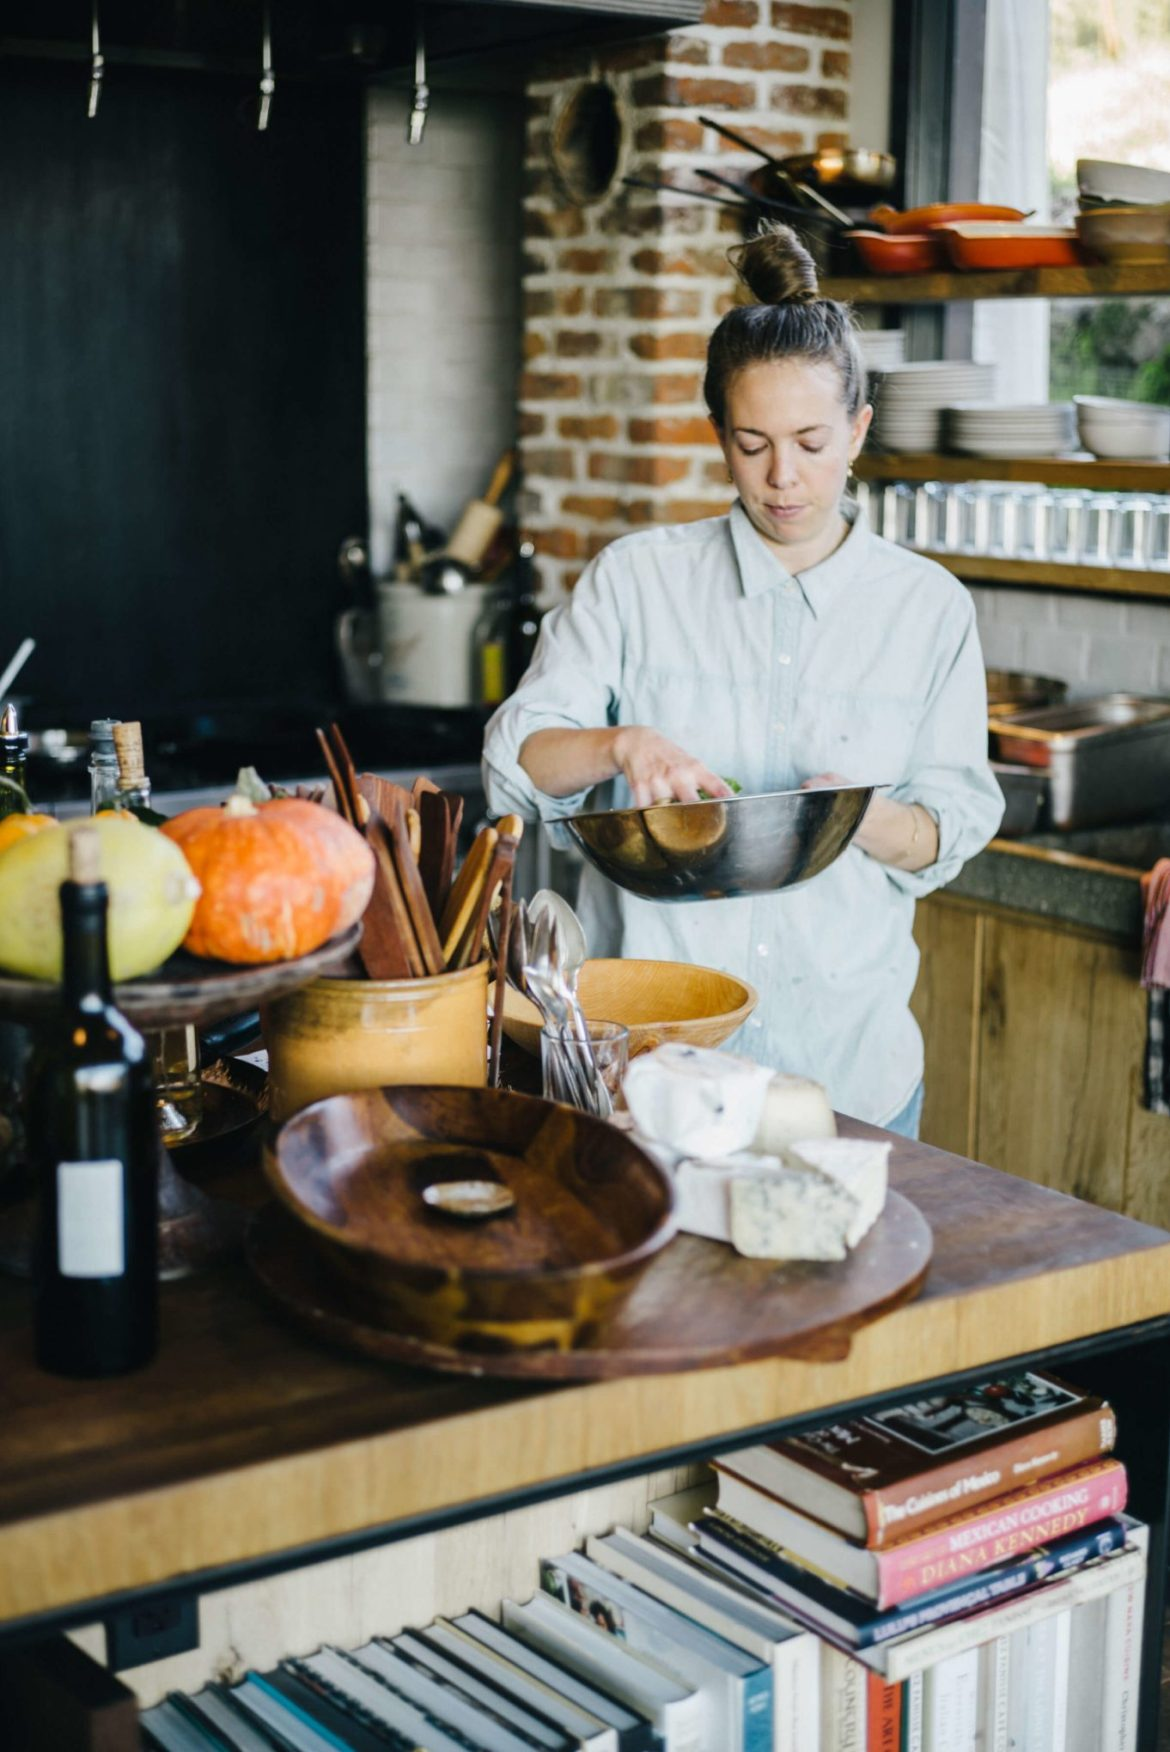 The Taste Edit visits Scribe Winery Hacienda in Sonoma with Emma Lipp in the kitchen